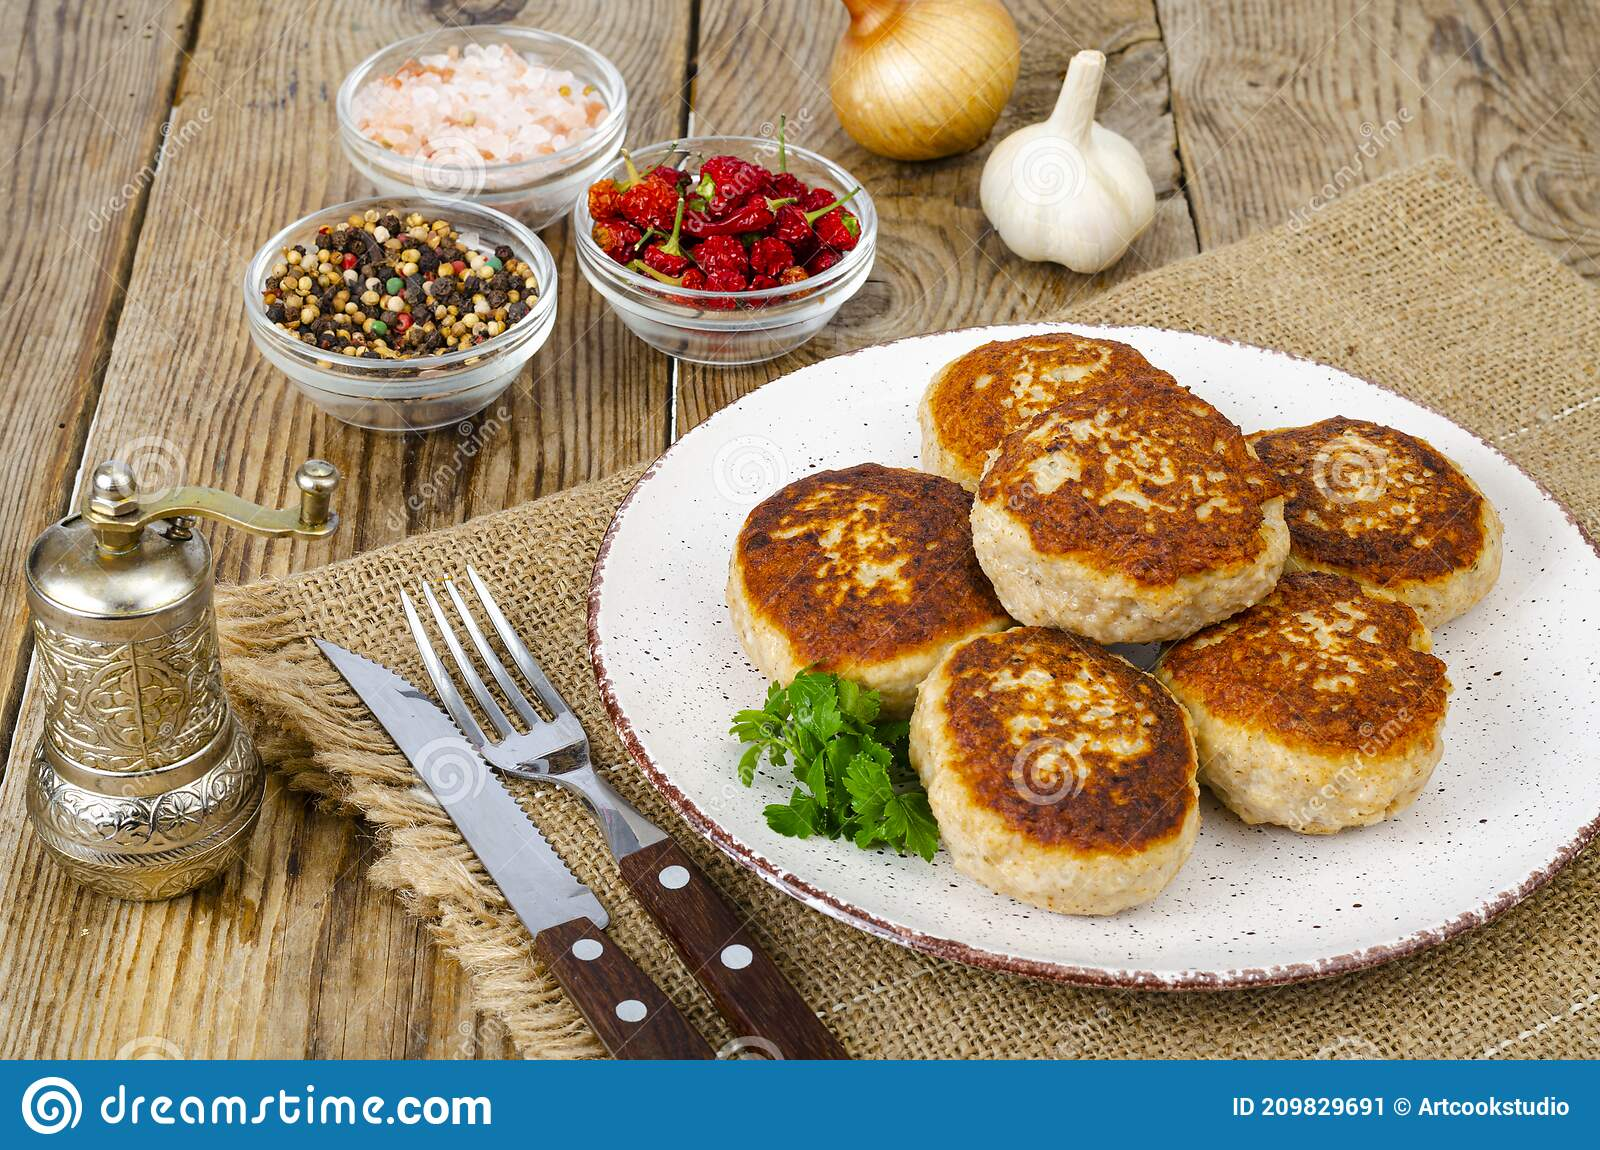 homemade meat cutlets on wooden table studio photo stock image image of juicy dinner 209829691